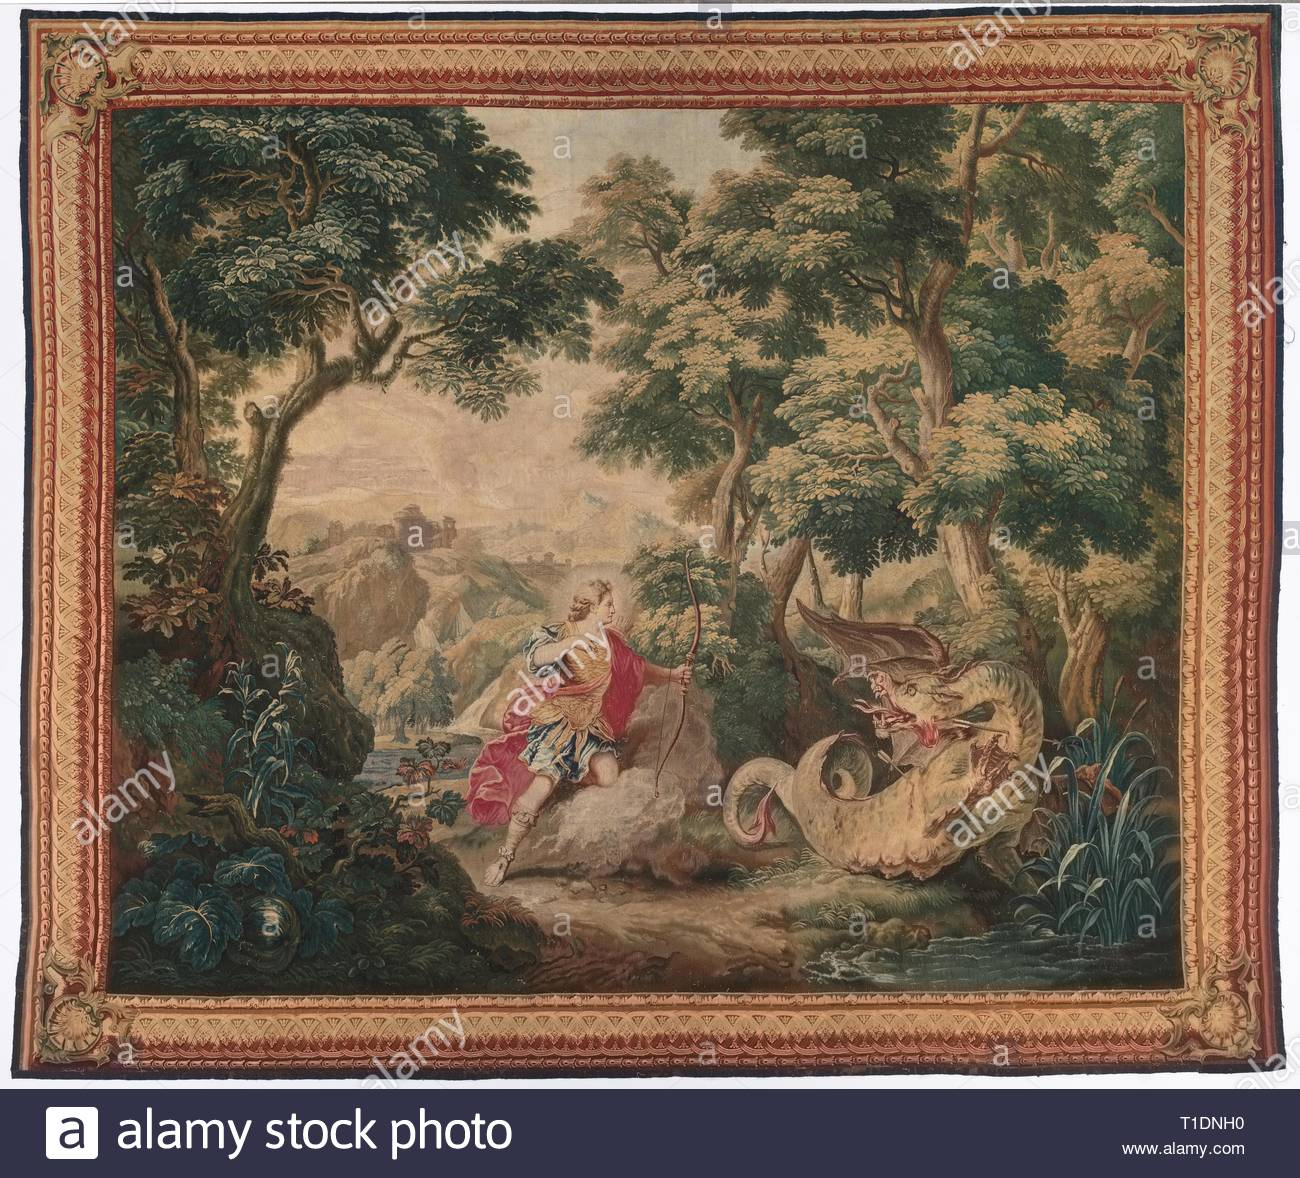 Apollo and the Serpent Python (from Set of Ovid's Metamorphoses), 1700-1730. Gobelins (French), after Nicolas Bertin (French, 1668-1736). Tapestry weave; overall: 330.2 x 393.4 cm (130 x 154 7/8 in.). - Stock Image